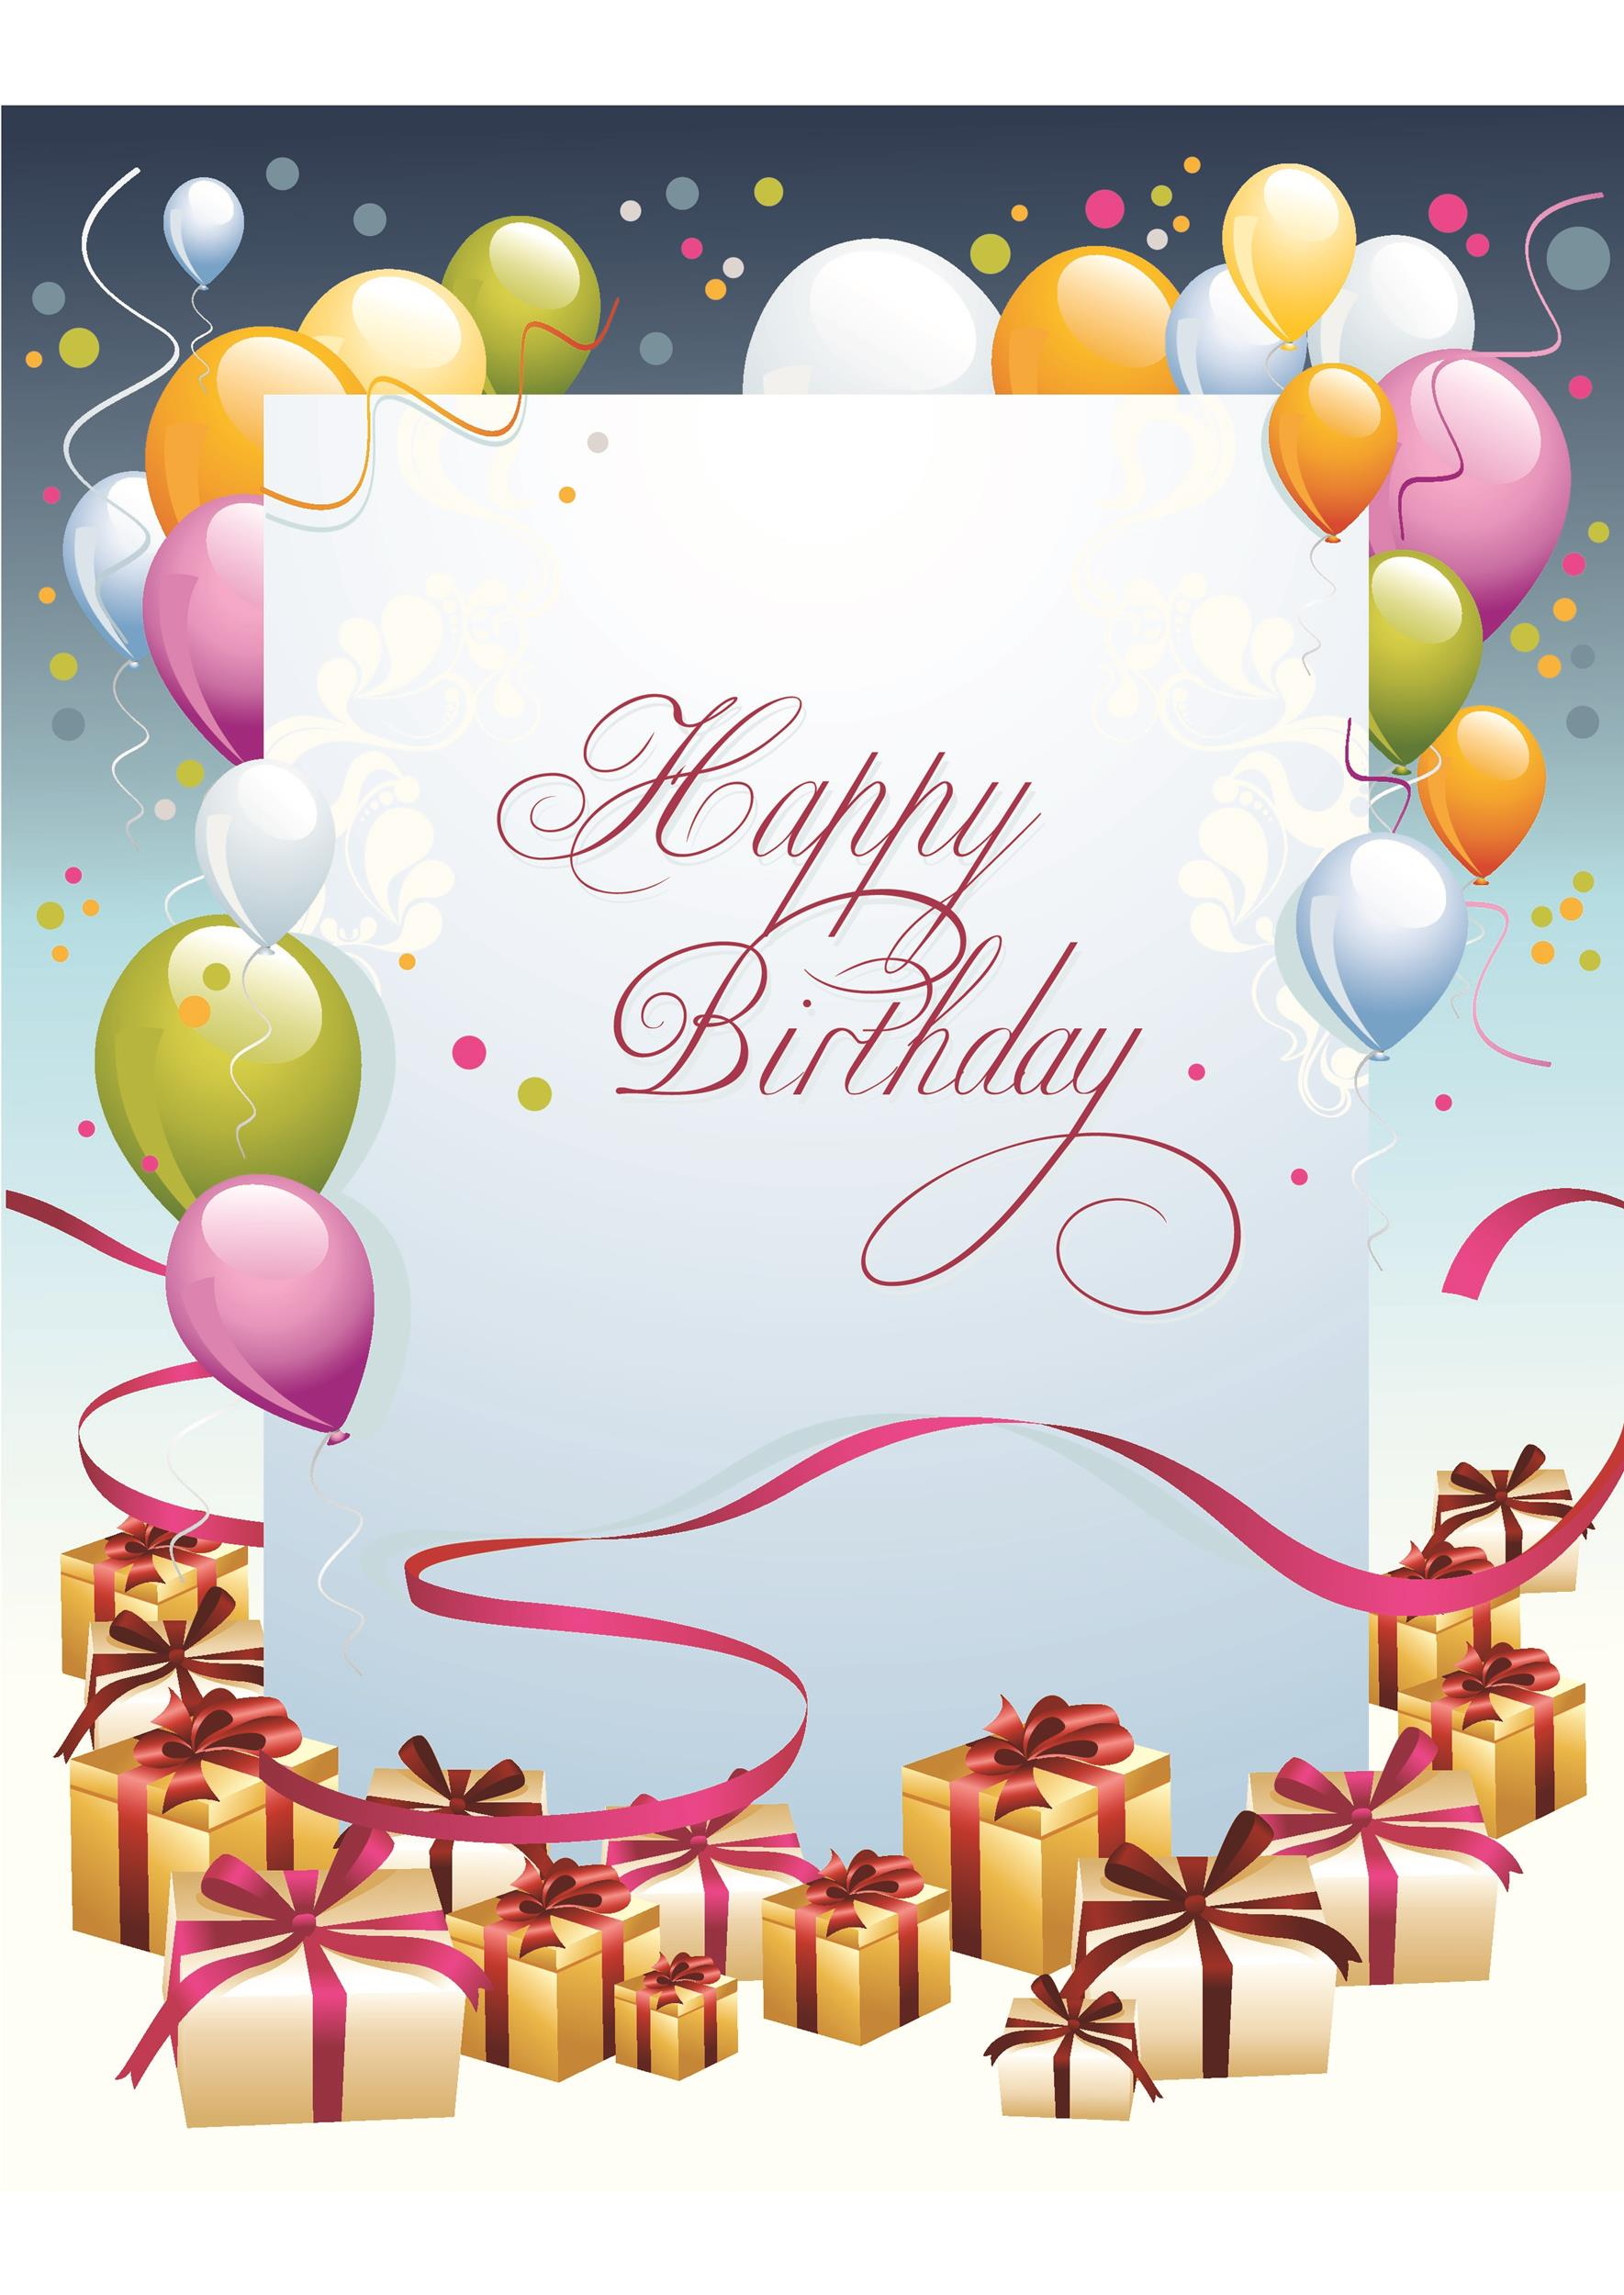 Printable Birthday Card Template 02  Birthday Greetings Download Free